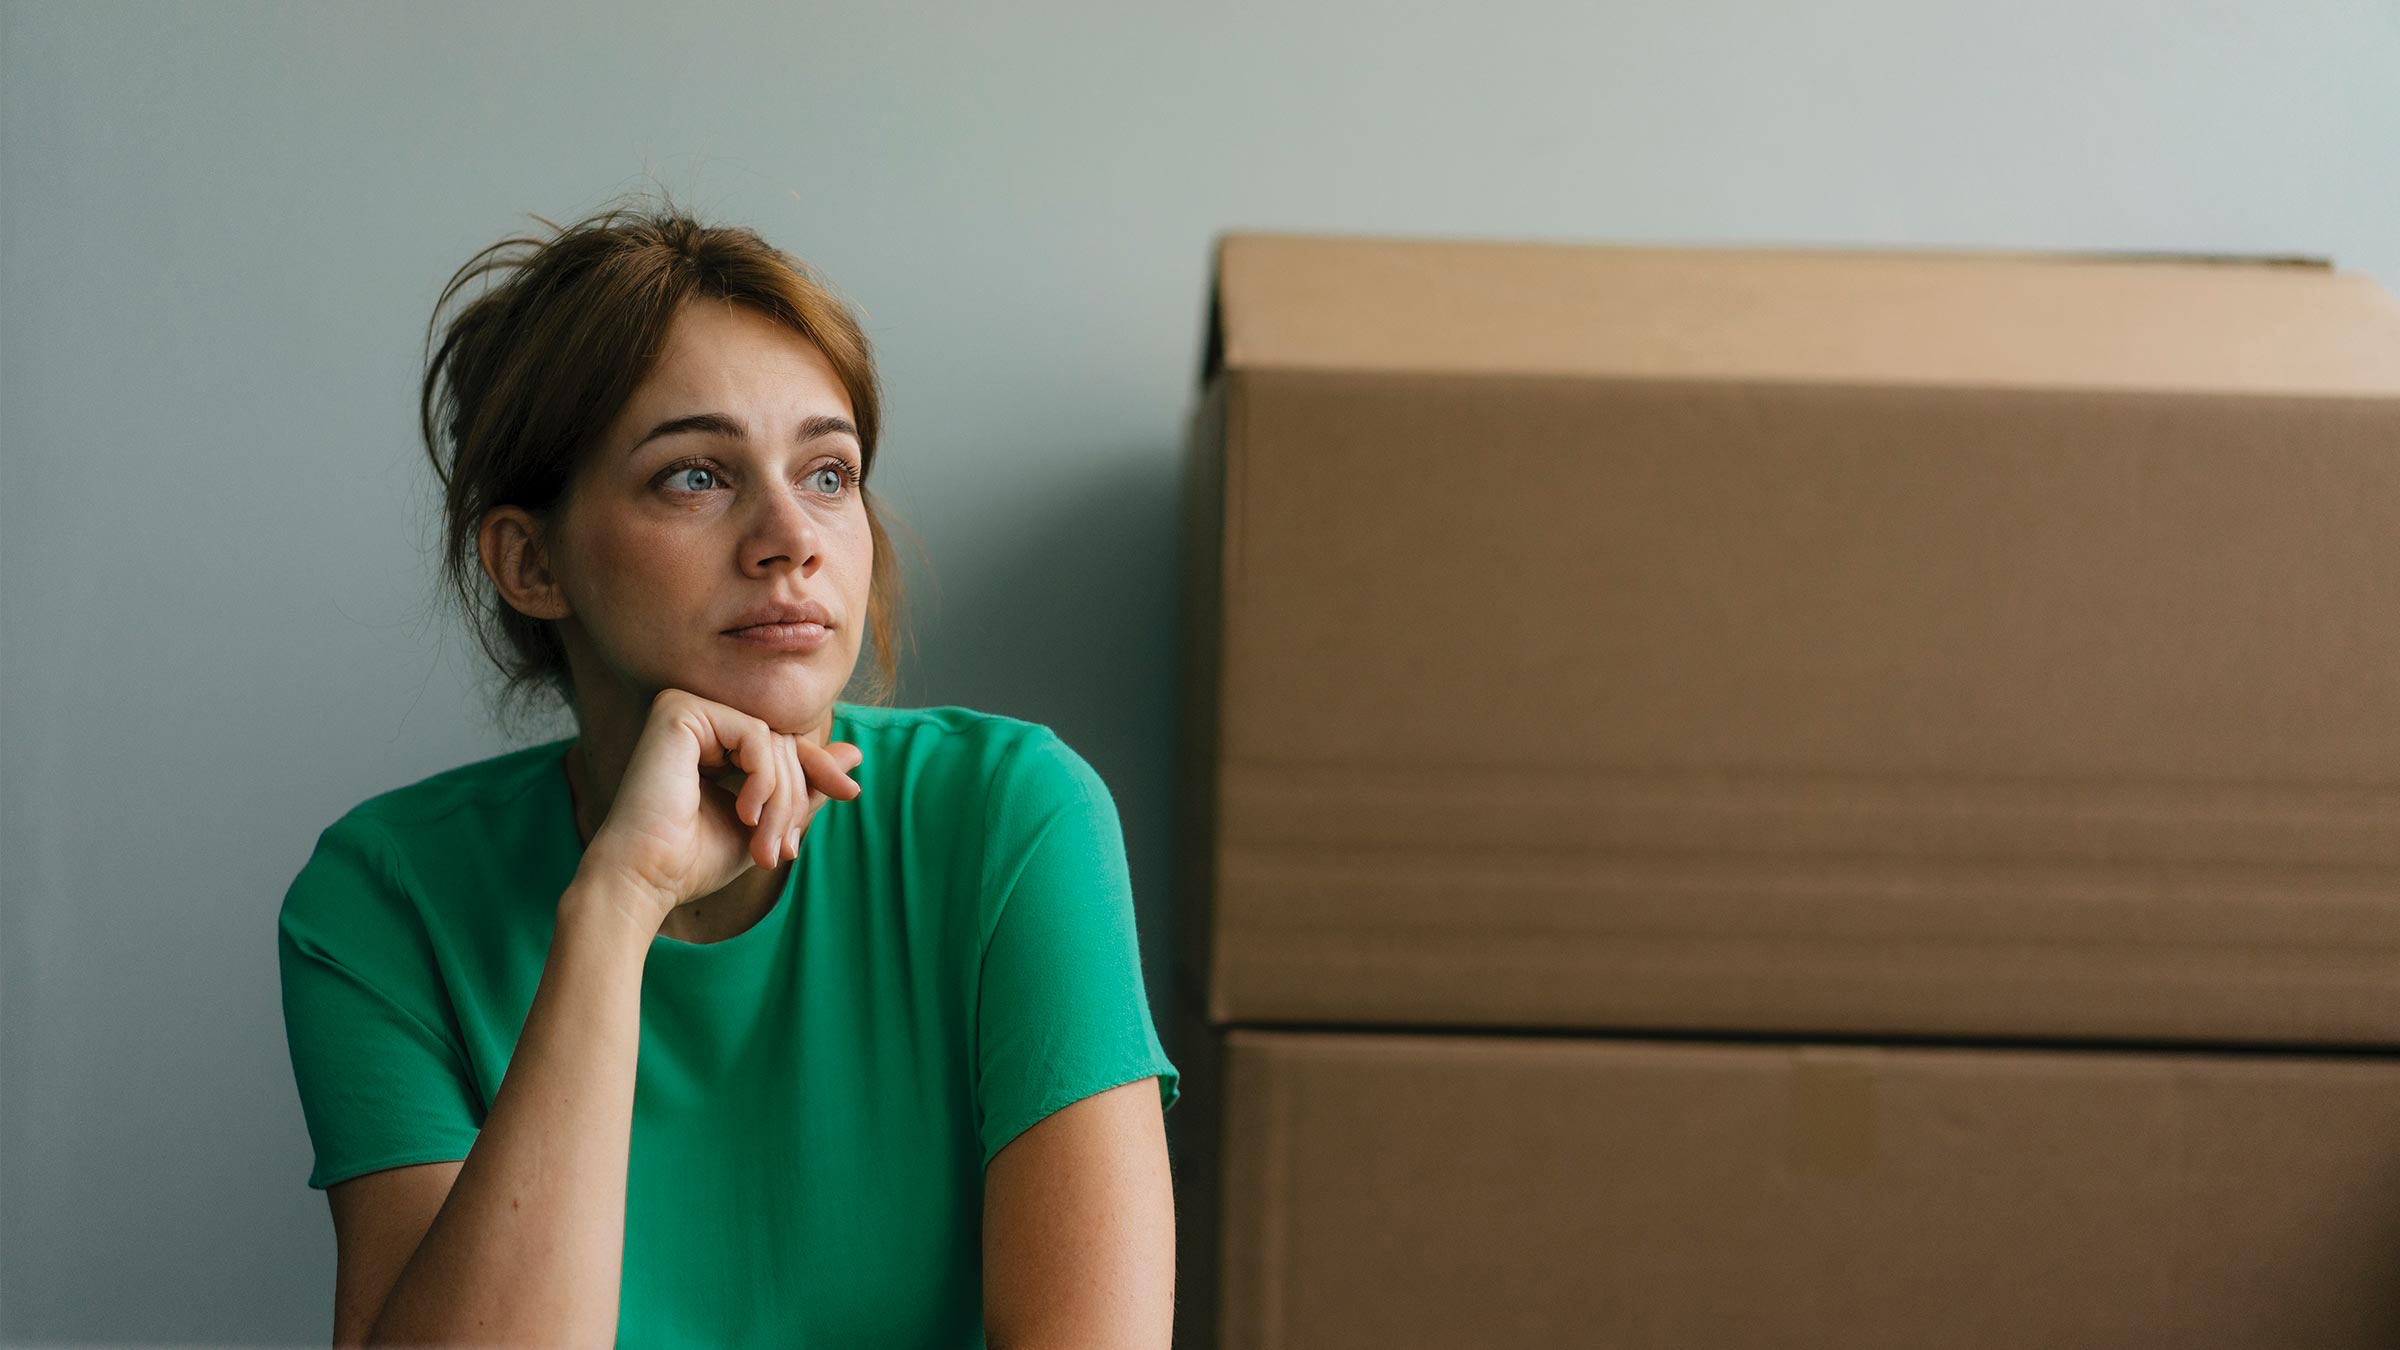 Woman sitting with moving boxes